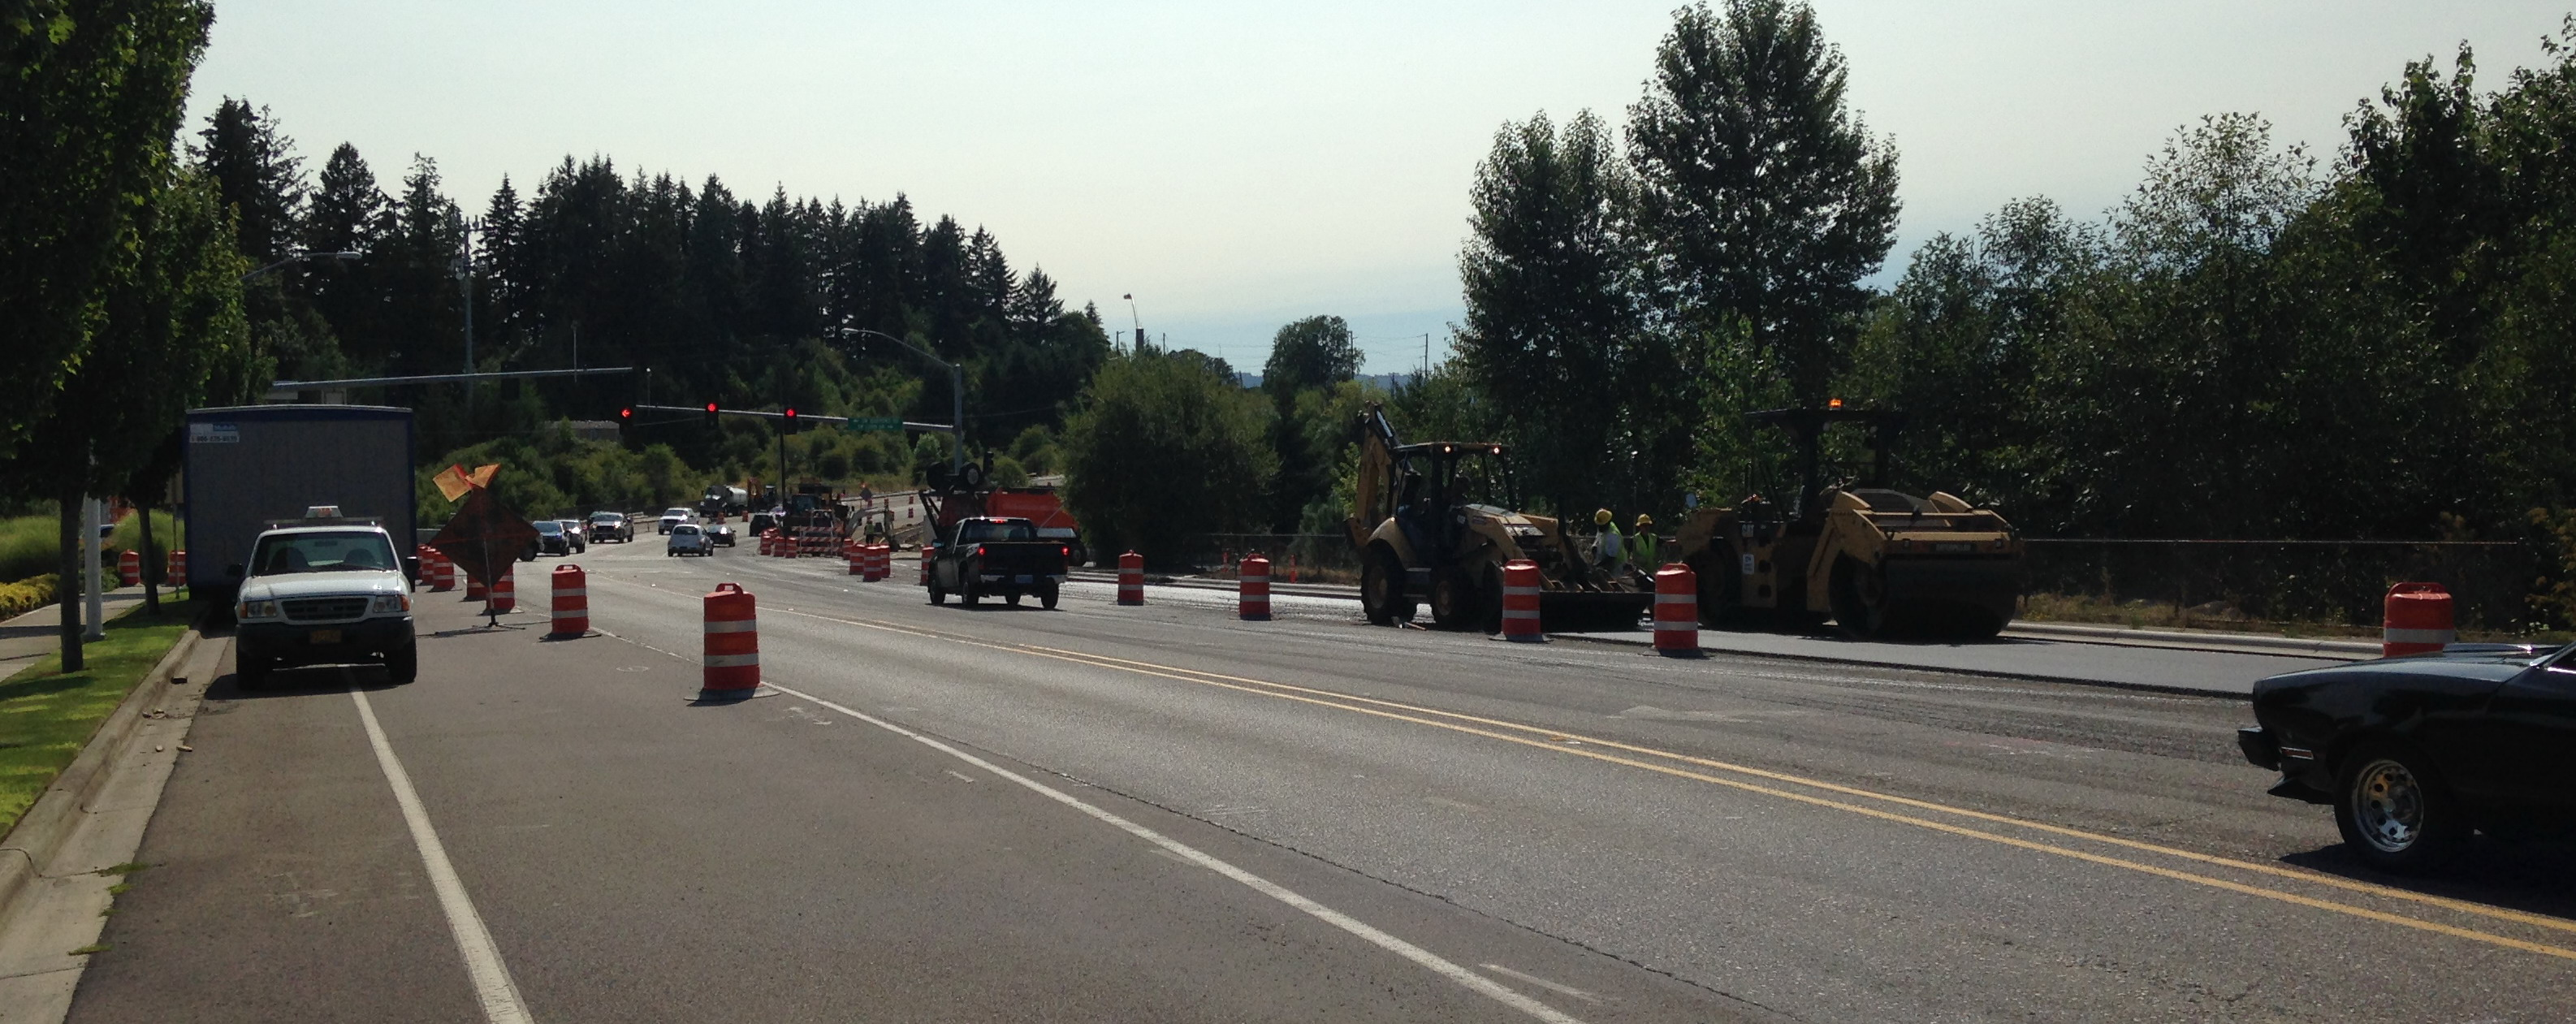 Scholls Ferry Road construction Aug 2014